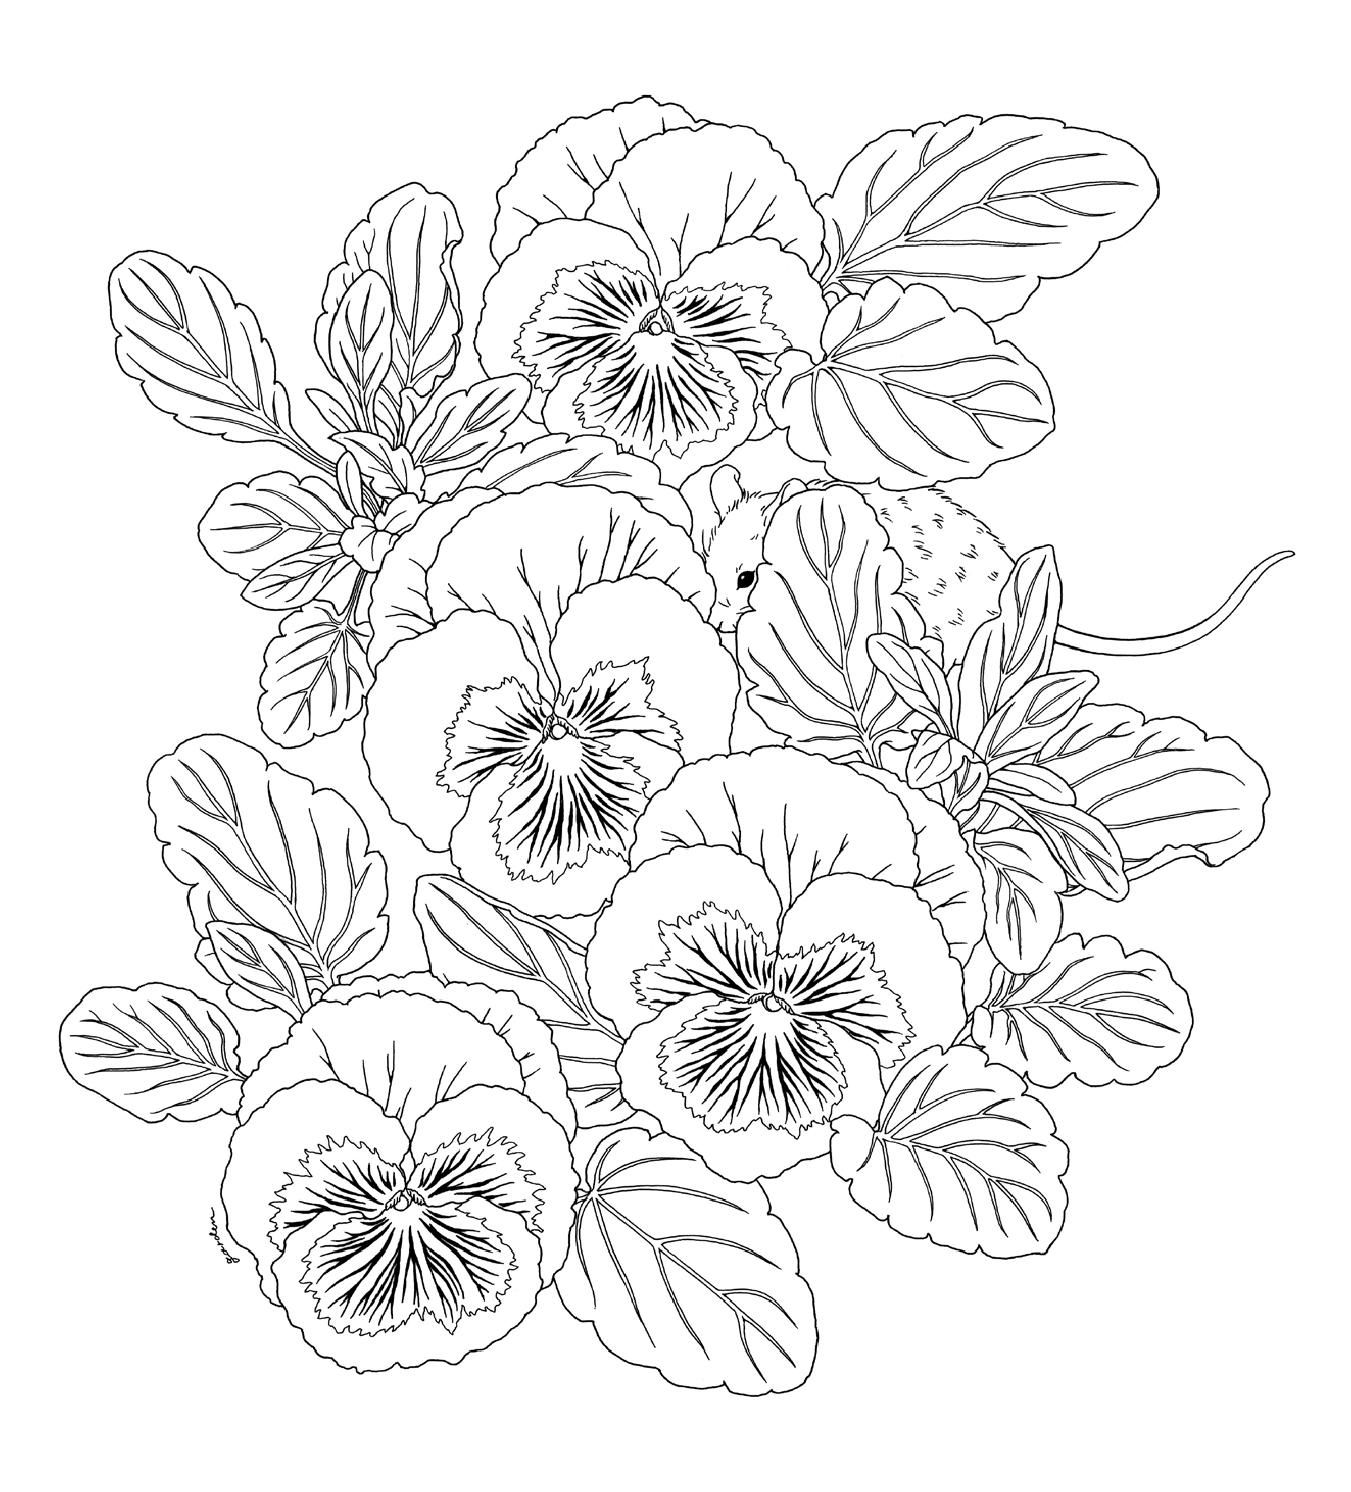 Harmony Of Nature Coloring Pages To Print